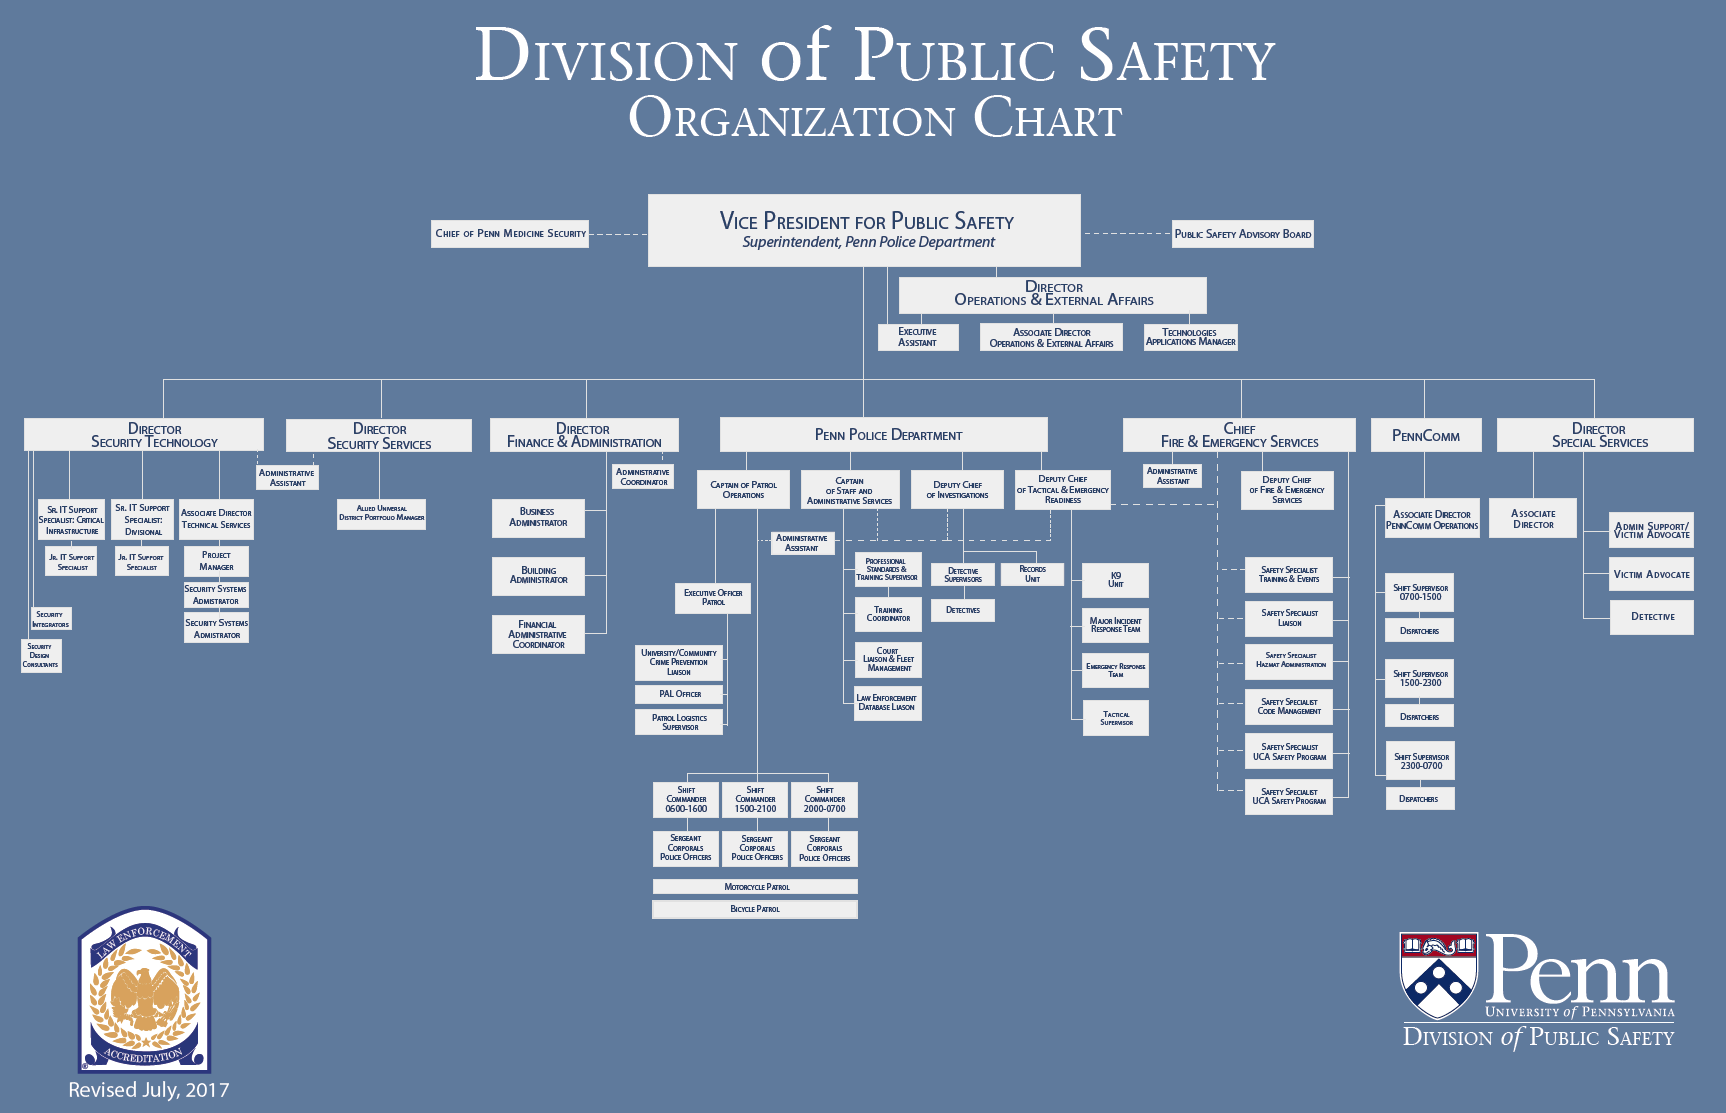 Organization chart division of public safety organization chart altavistaventures Image collections